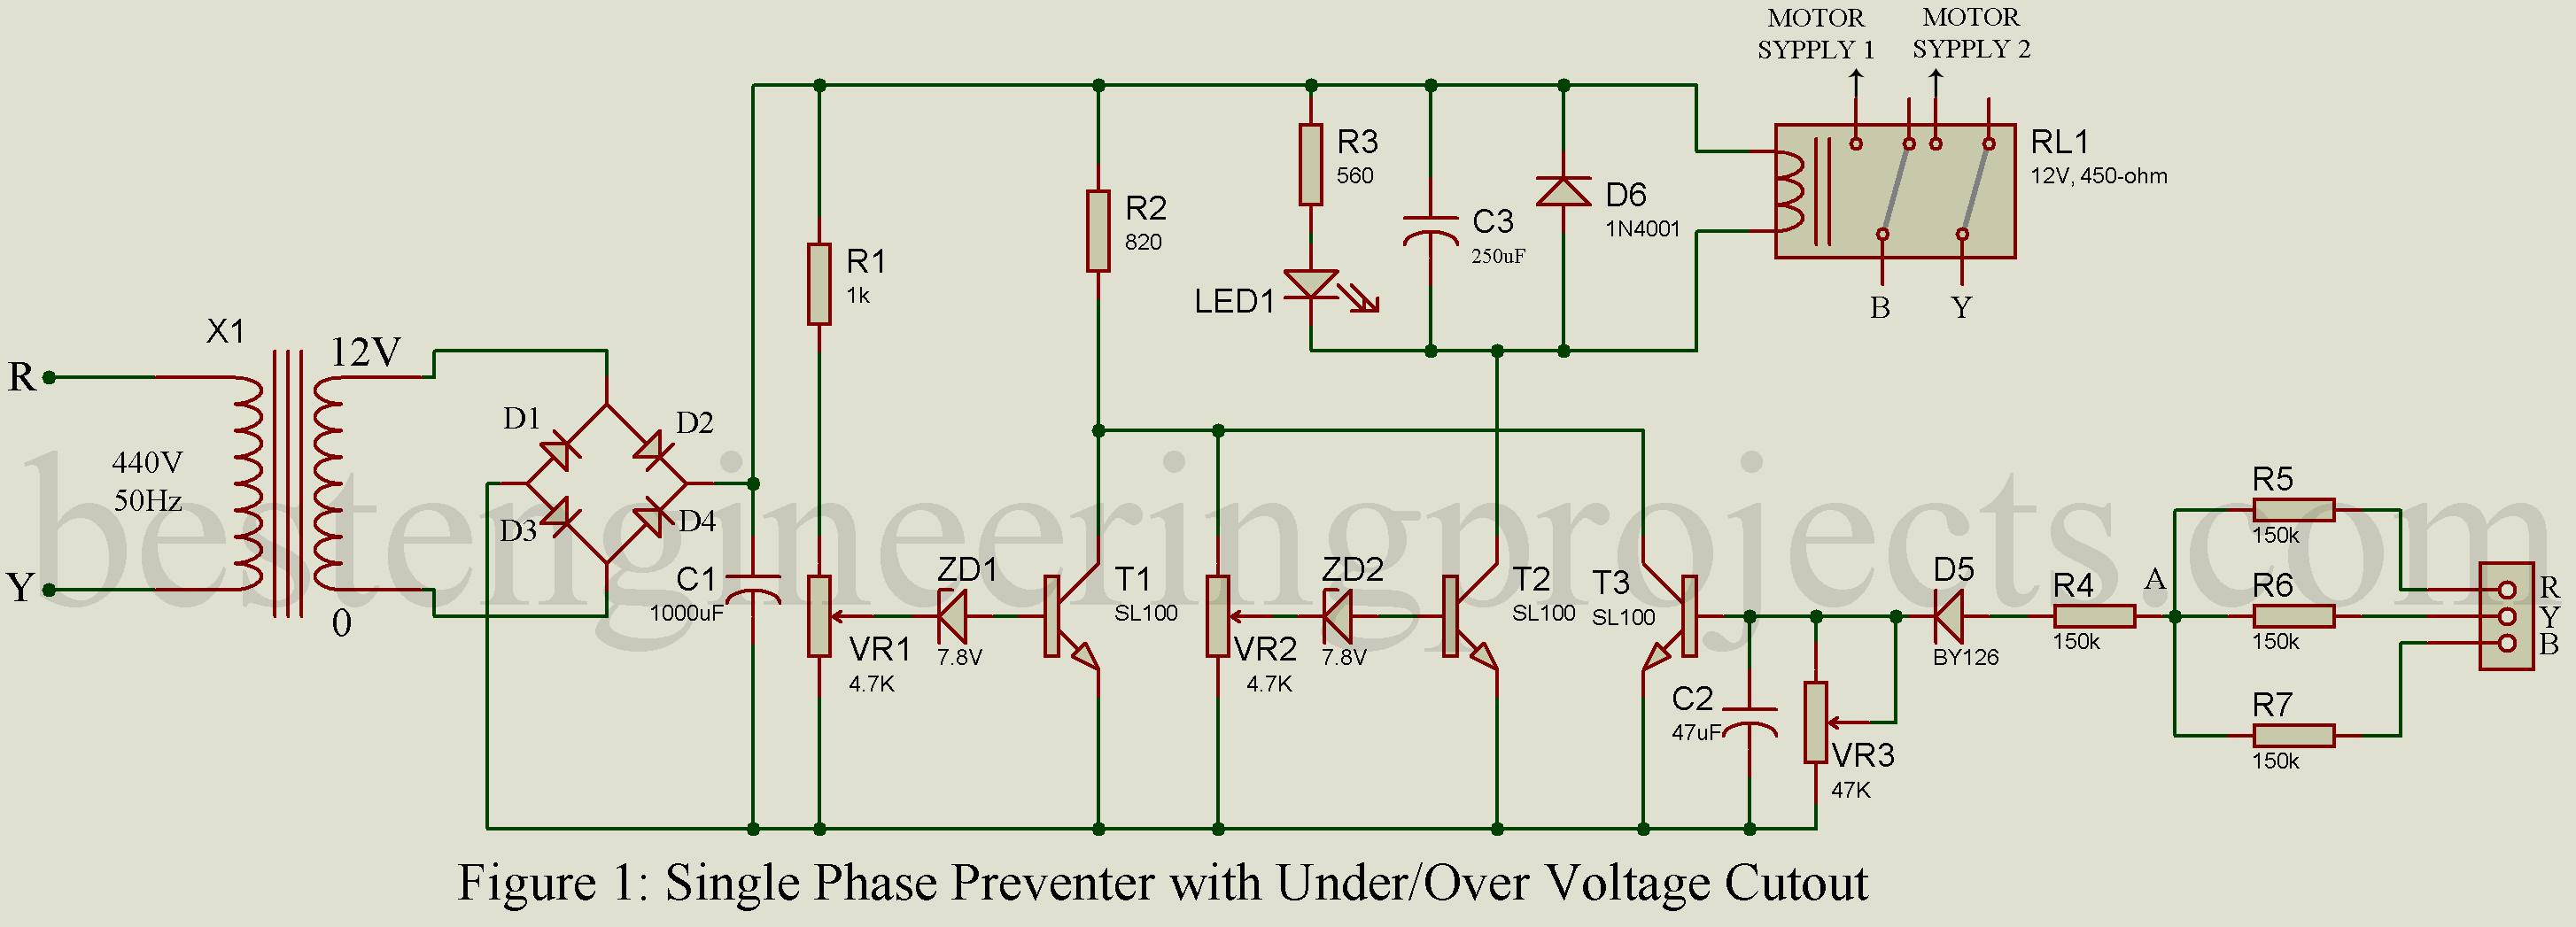 Singal Phase Timer Schematic Diagram Great Installation Of Wiring Single Preventer With Under Over Voltage Cutout Best Rh Bestengineeringprojects Com 42 1111 Sestos B1s